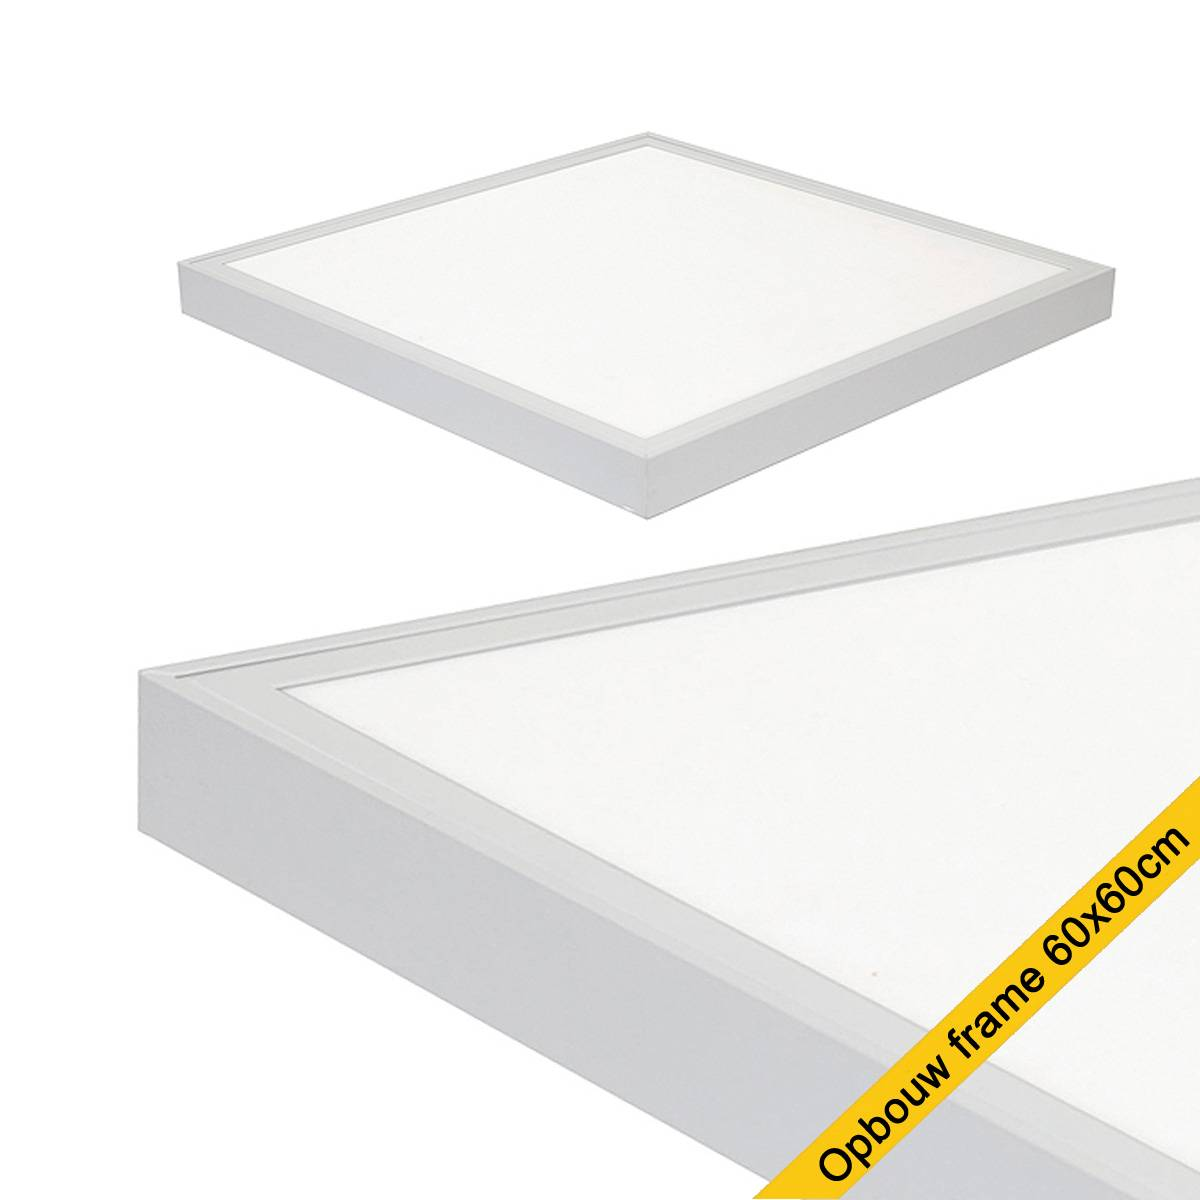 https://www.alle-ledverlichting.nl/_Files_Products/173-img_1-led-paneel-opbouwframe-60x60cm.jpg